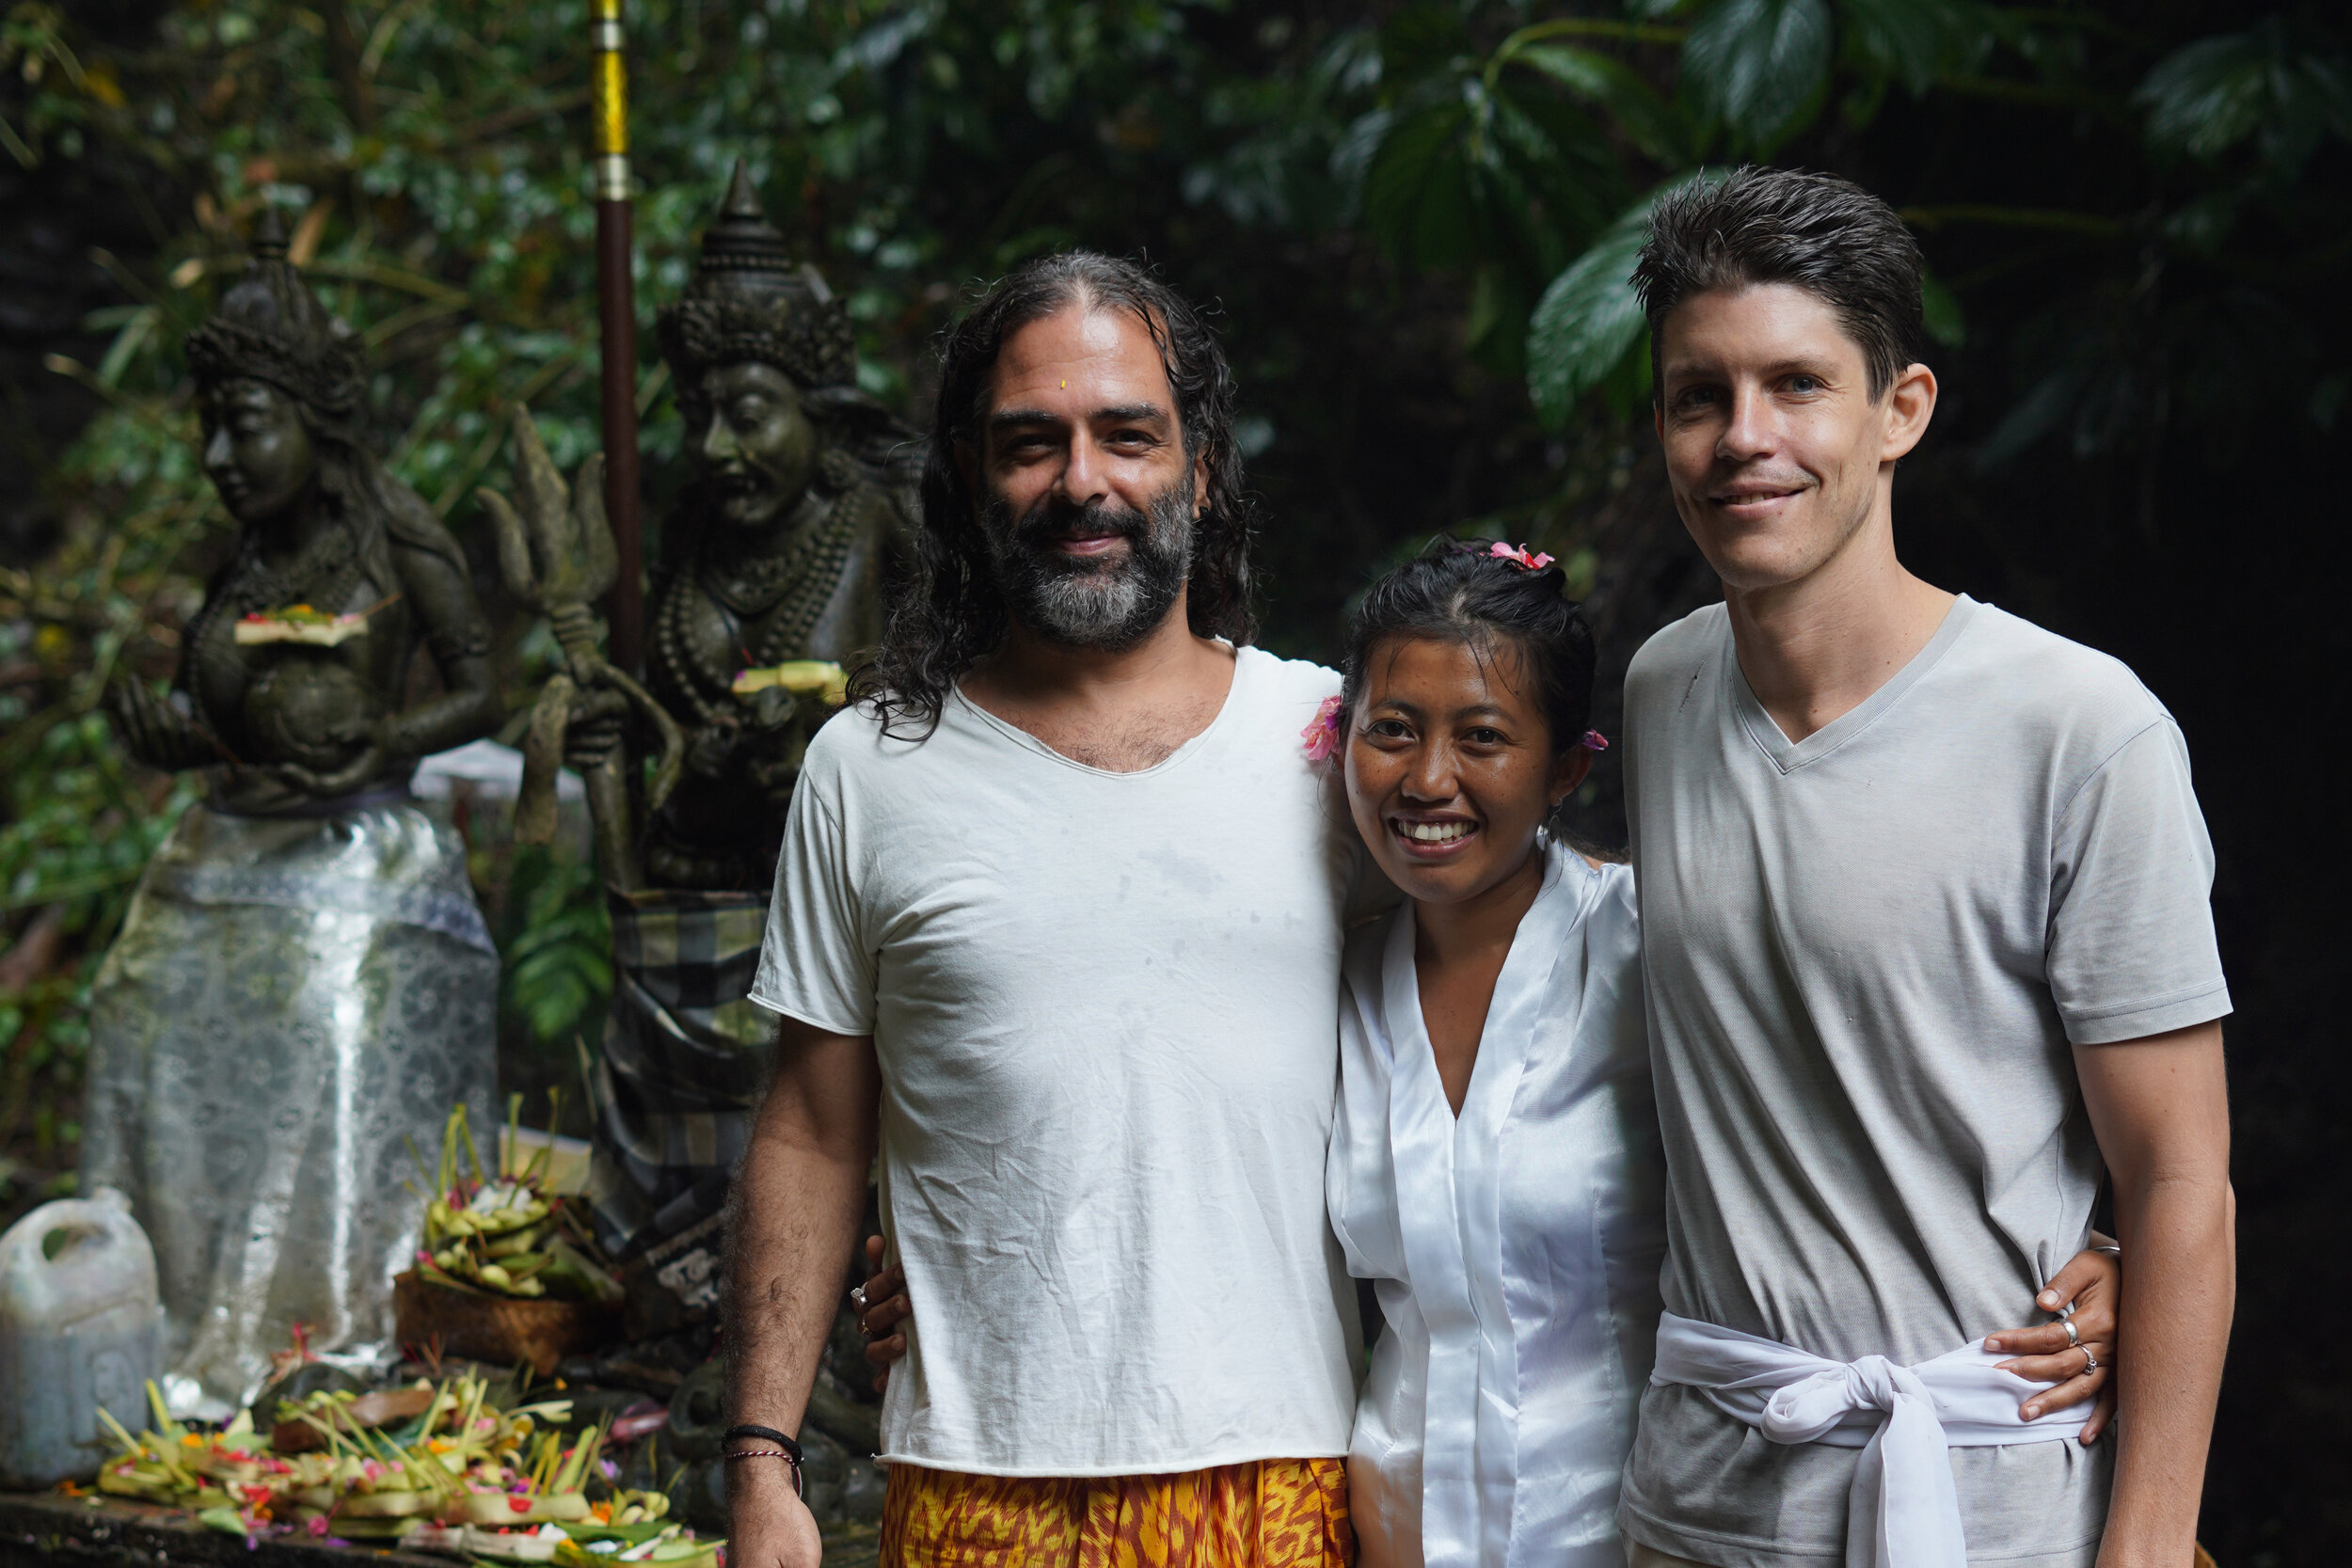 Gonçalo, Tya and Nevin in a temple in Bali, after a Melukat ceremony performed by Tya